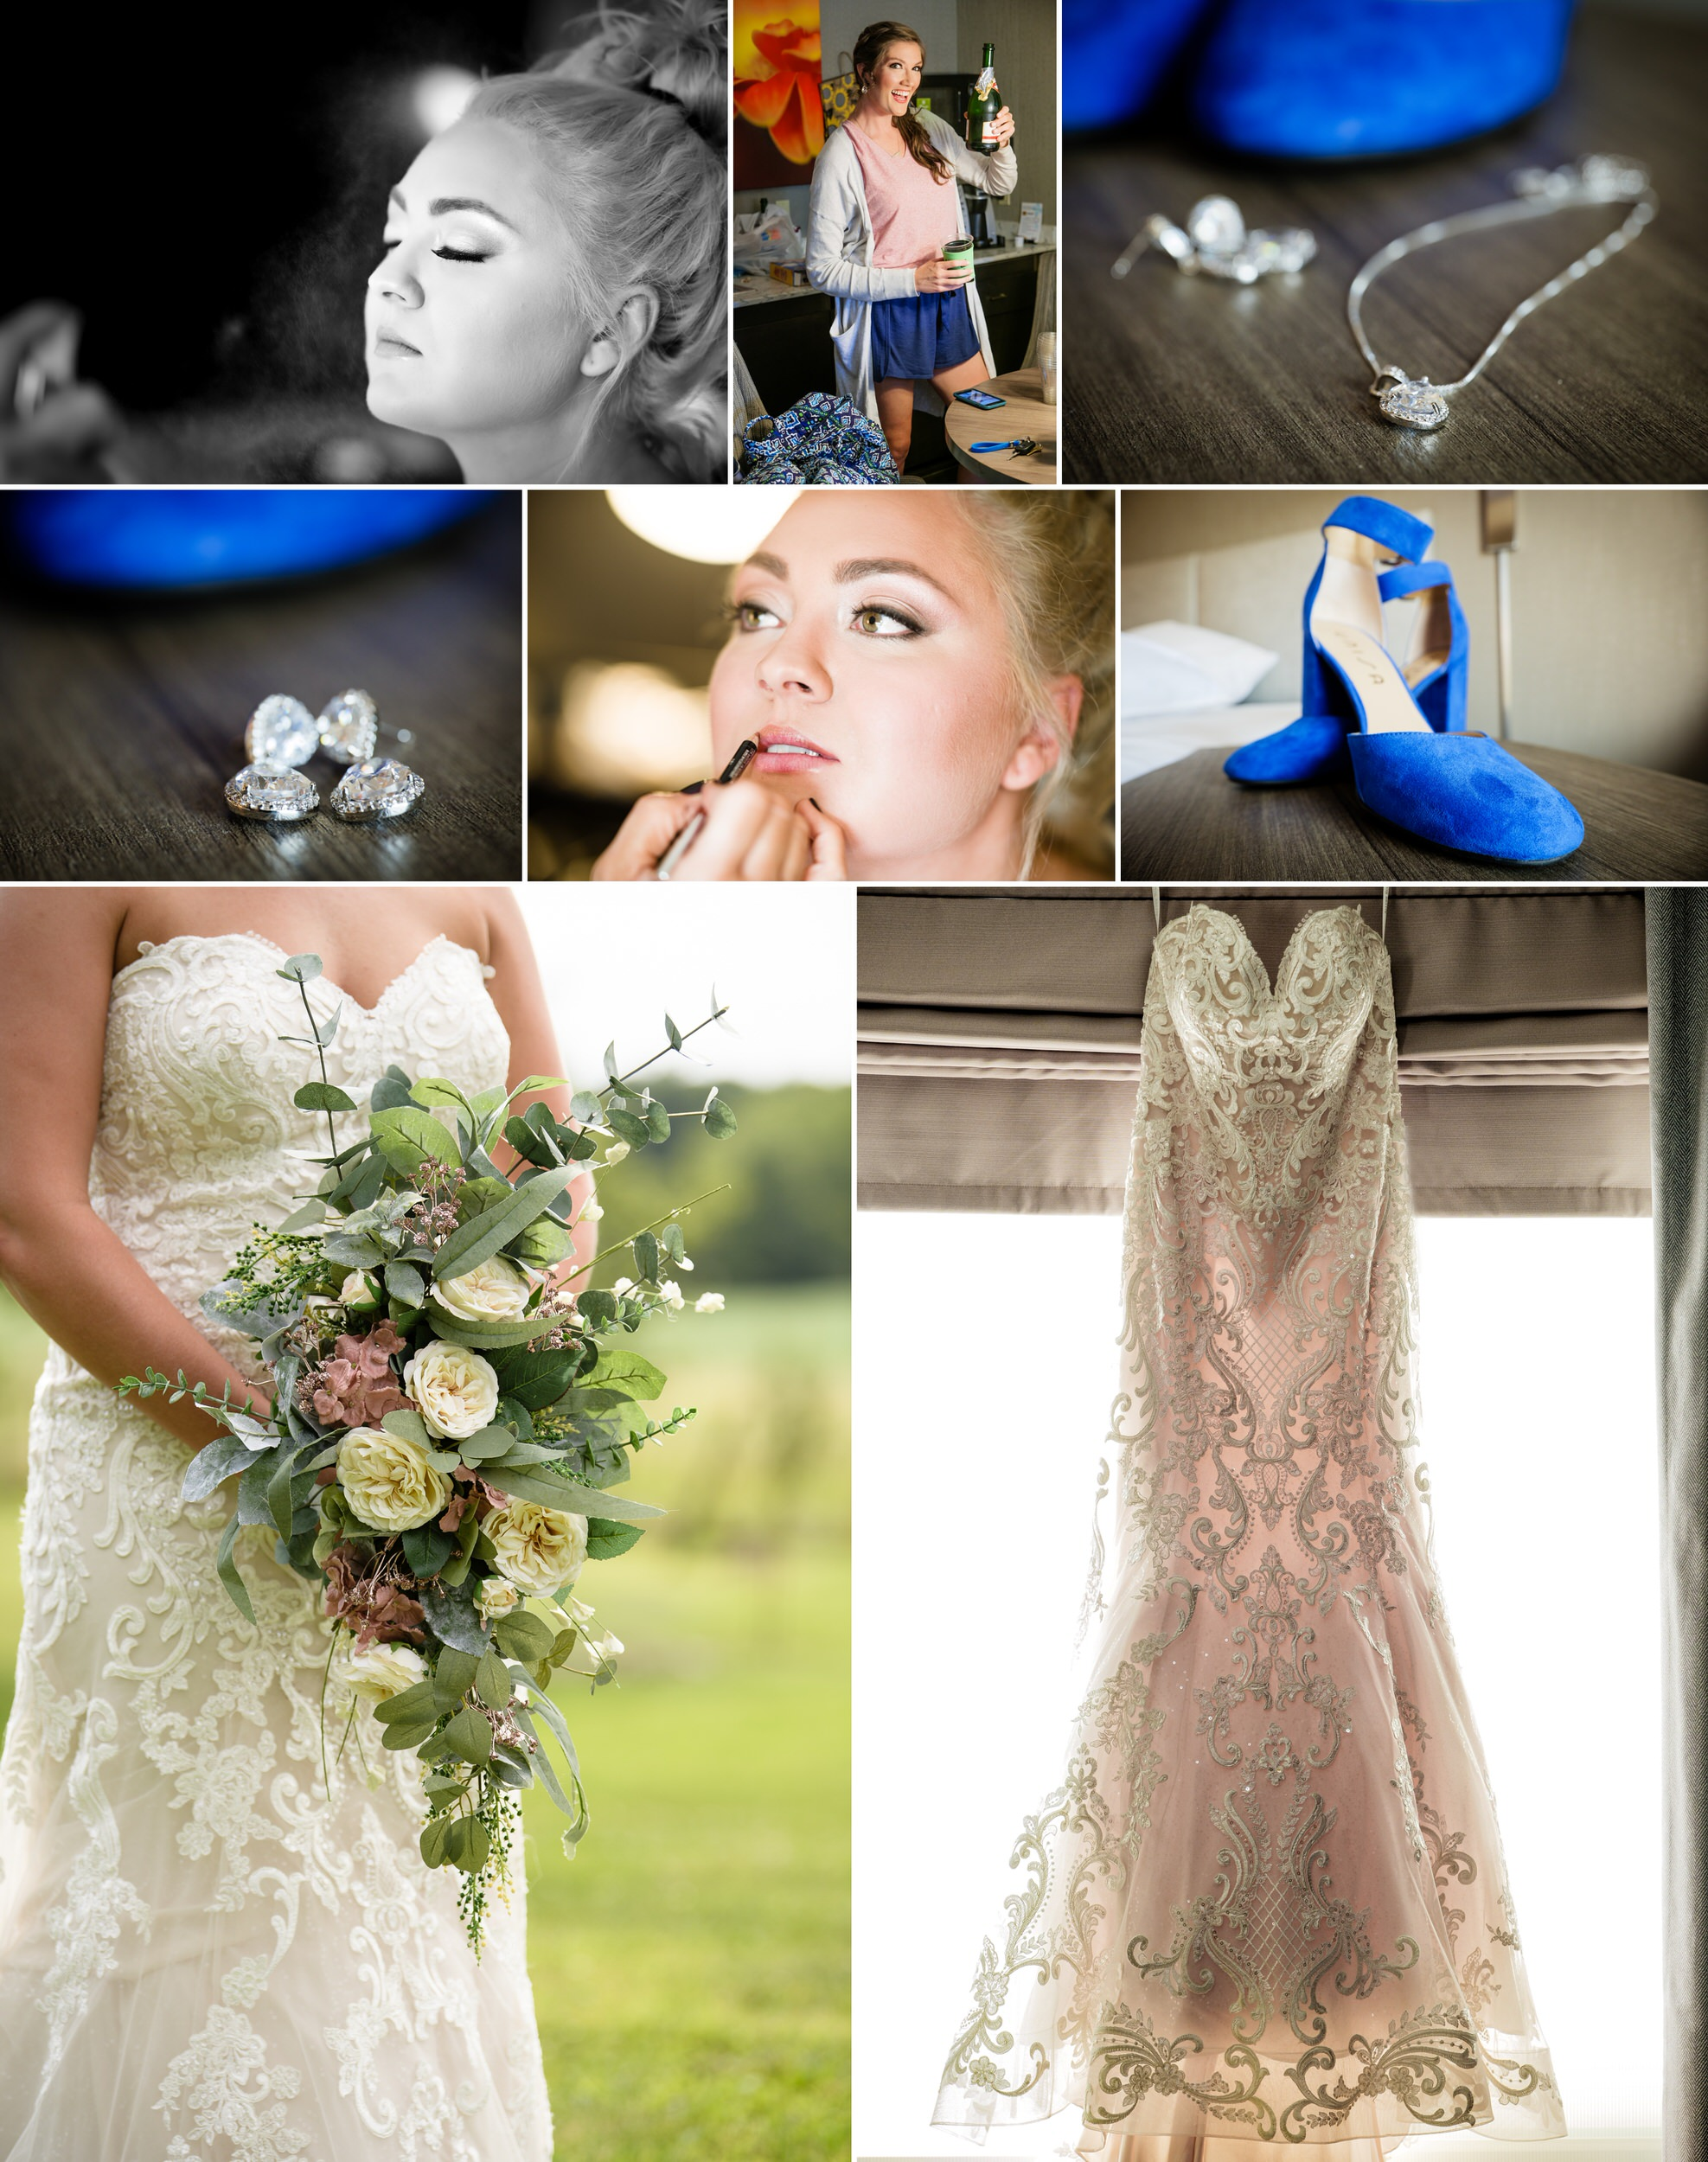 Bridal details for a wedding at Four Corners Winery.